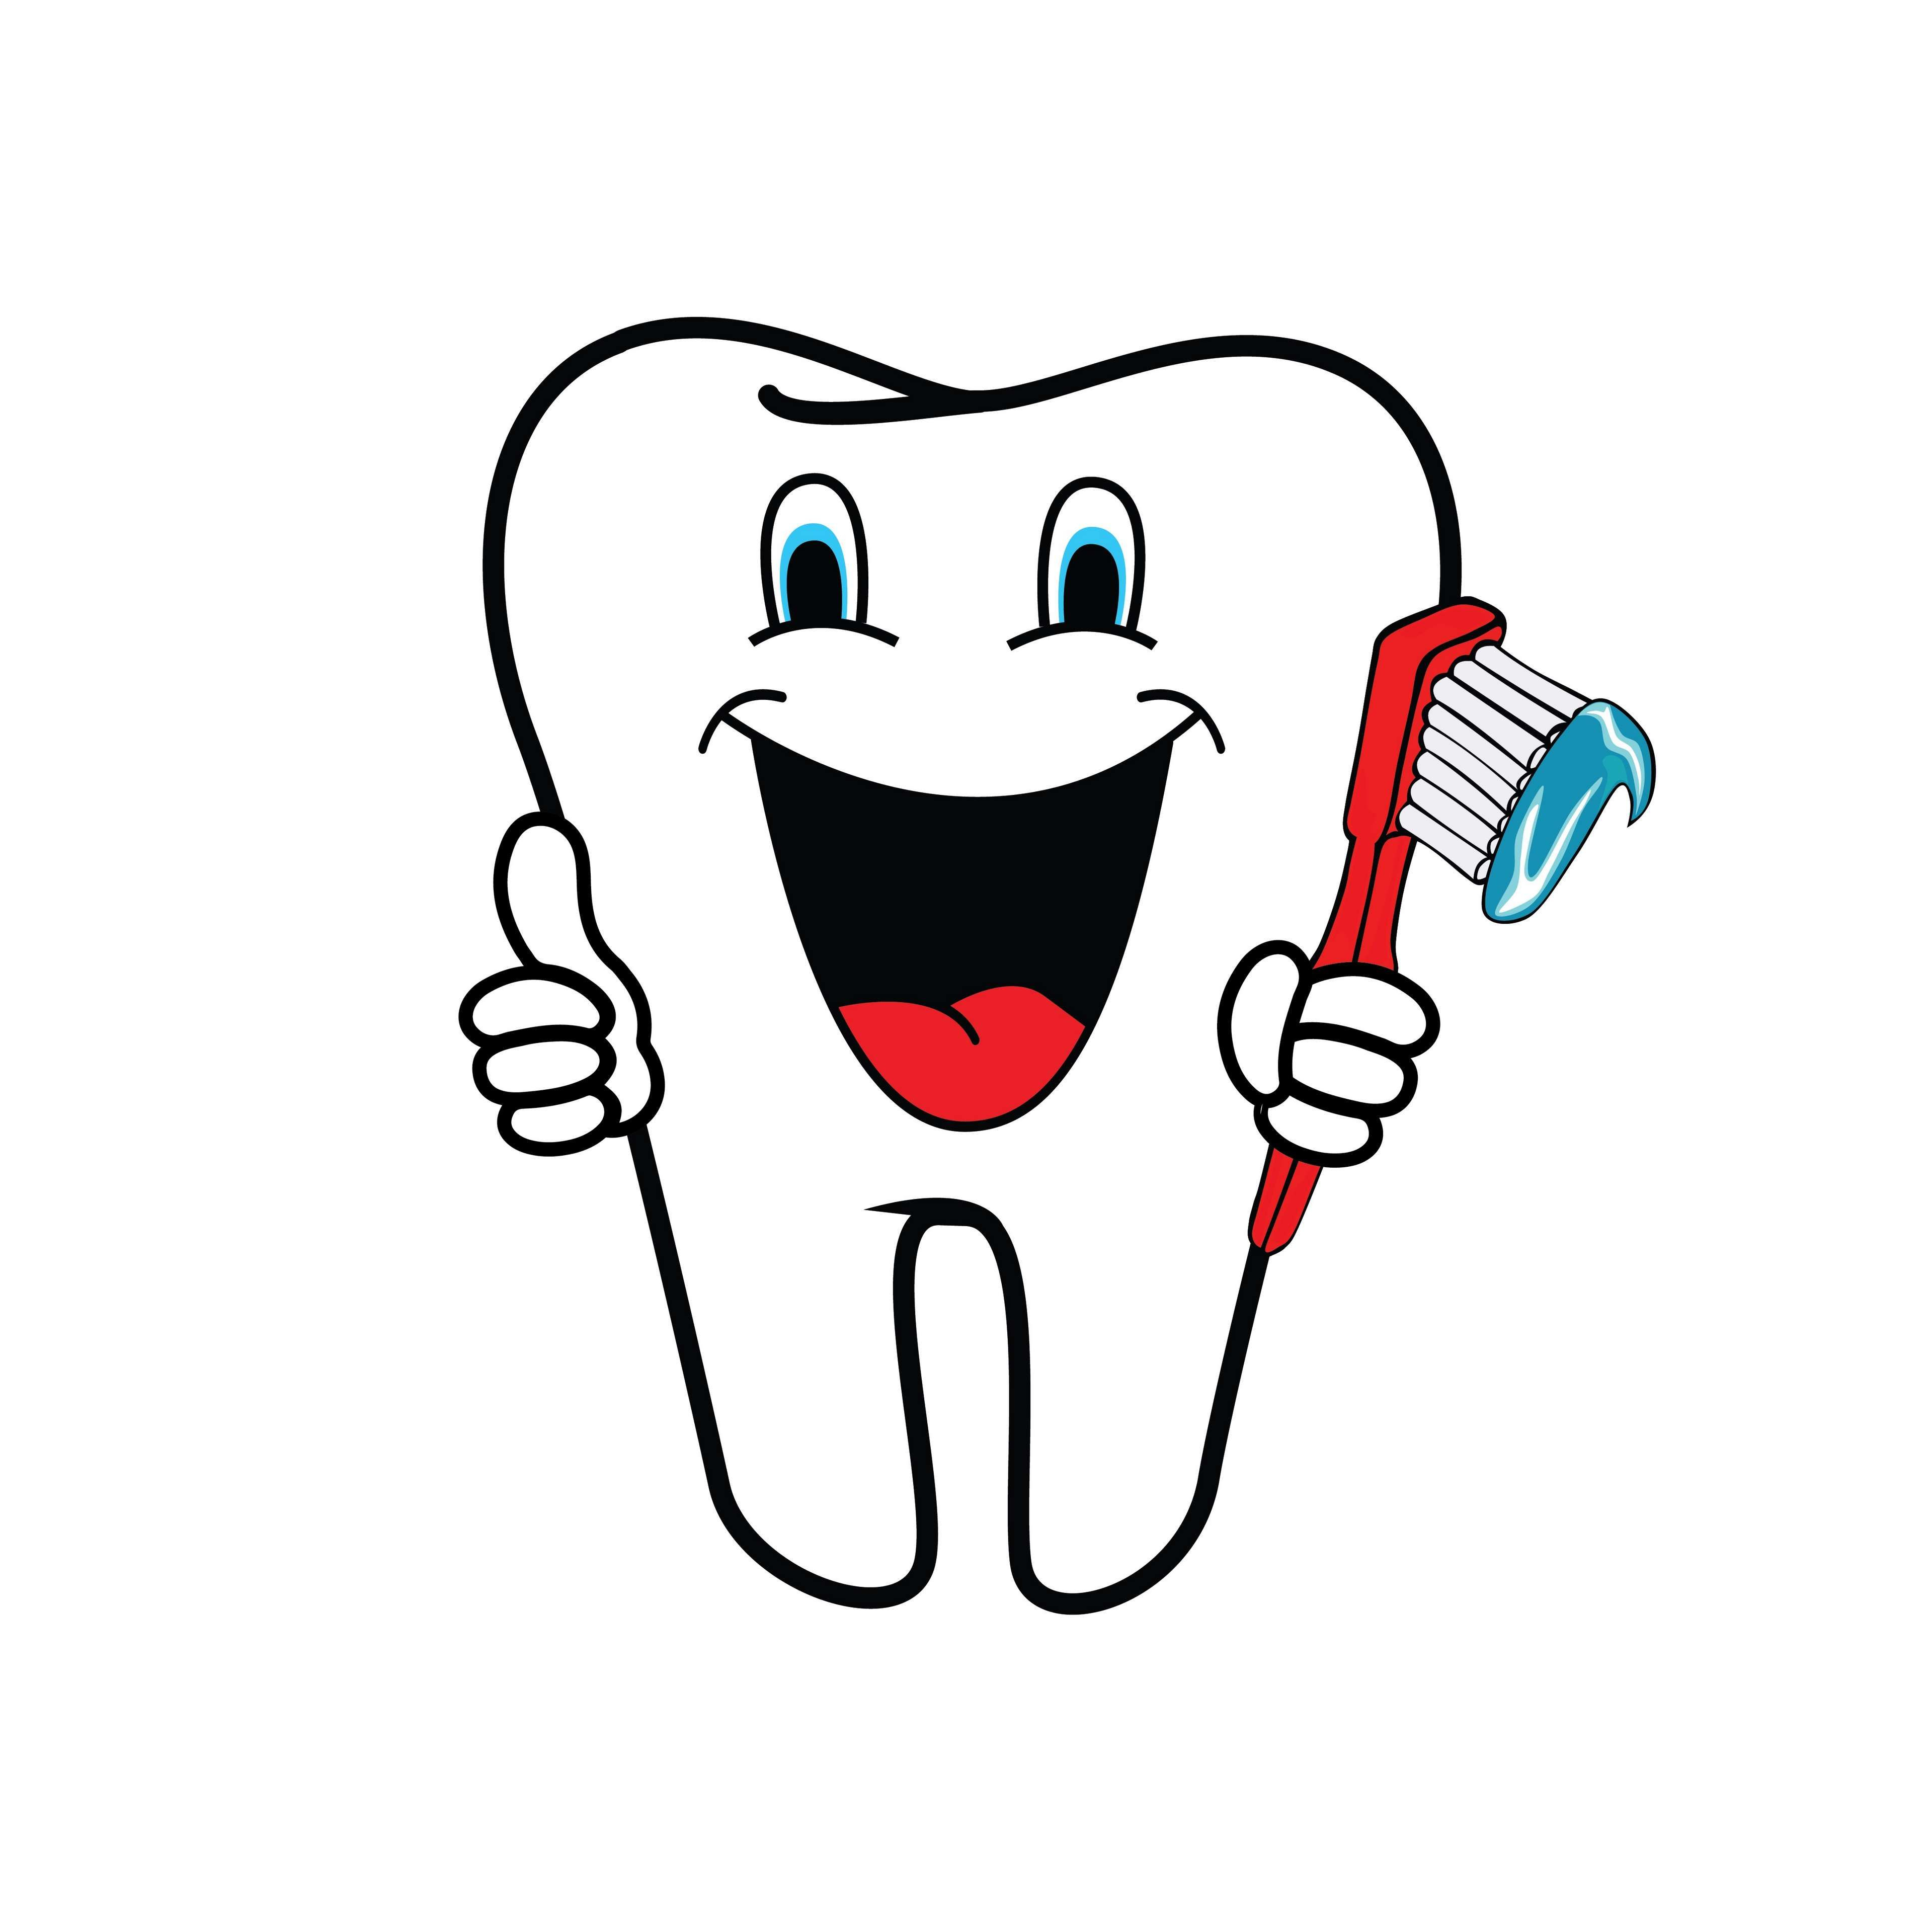 Tooth caricature clipart freeuse download Dentist Drawing   Free download best Dentist Drawing on ... freeuse download